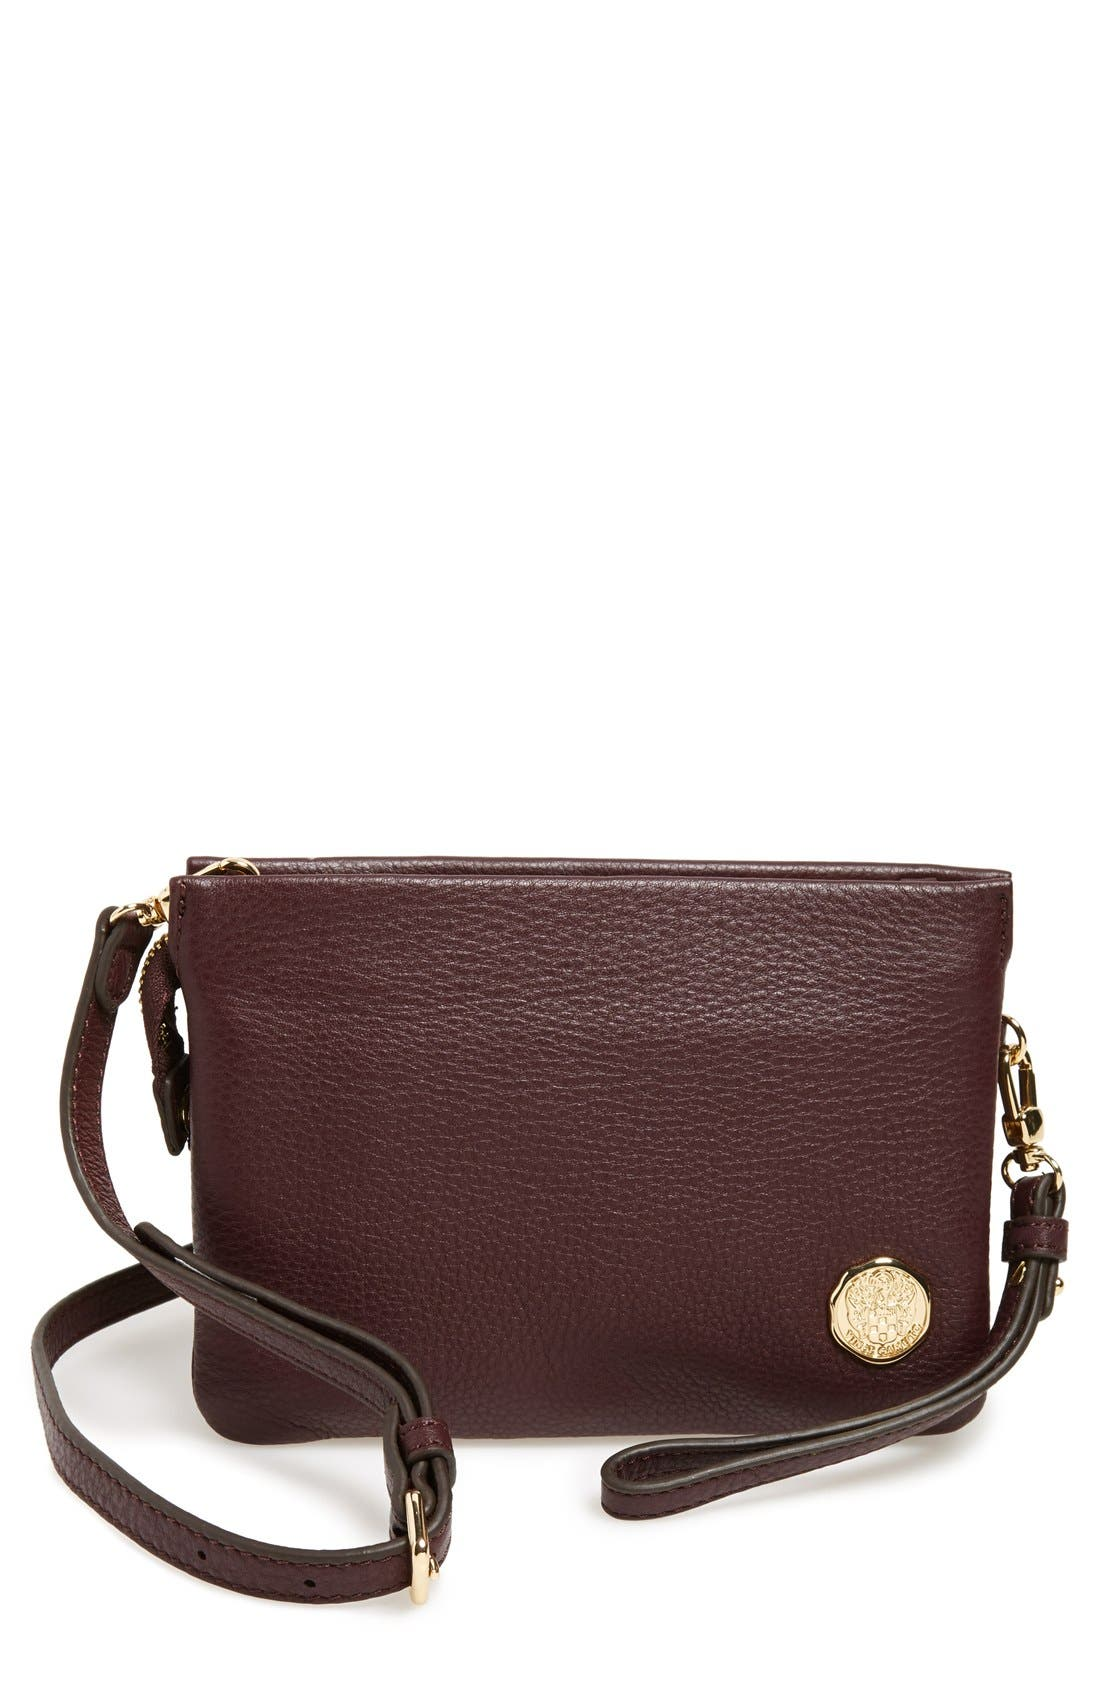 'Cami' Leather Crossbody Bag,                             Alternate thumbnail 78, color,